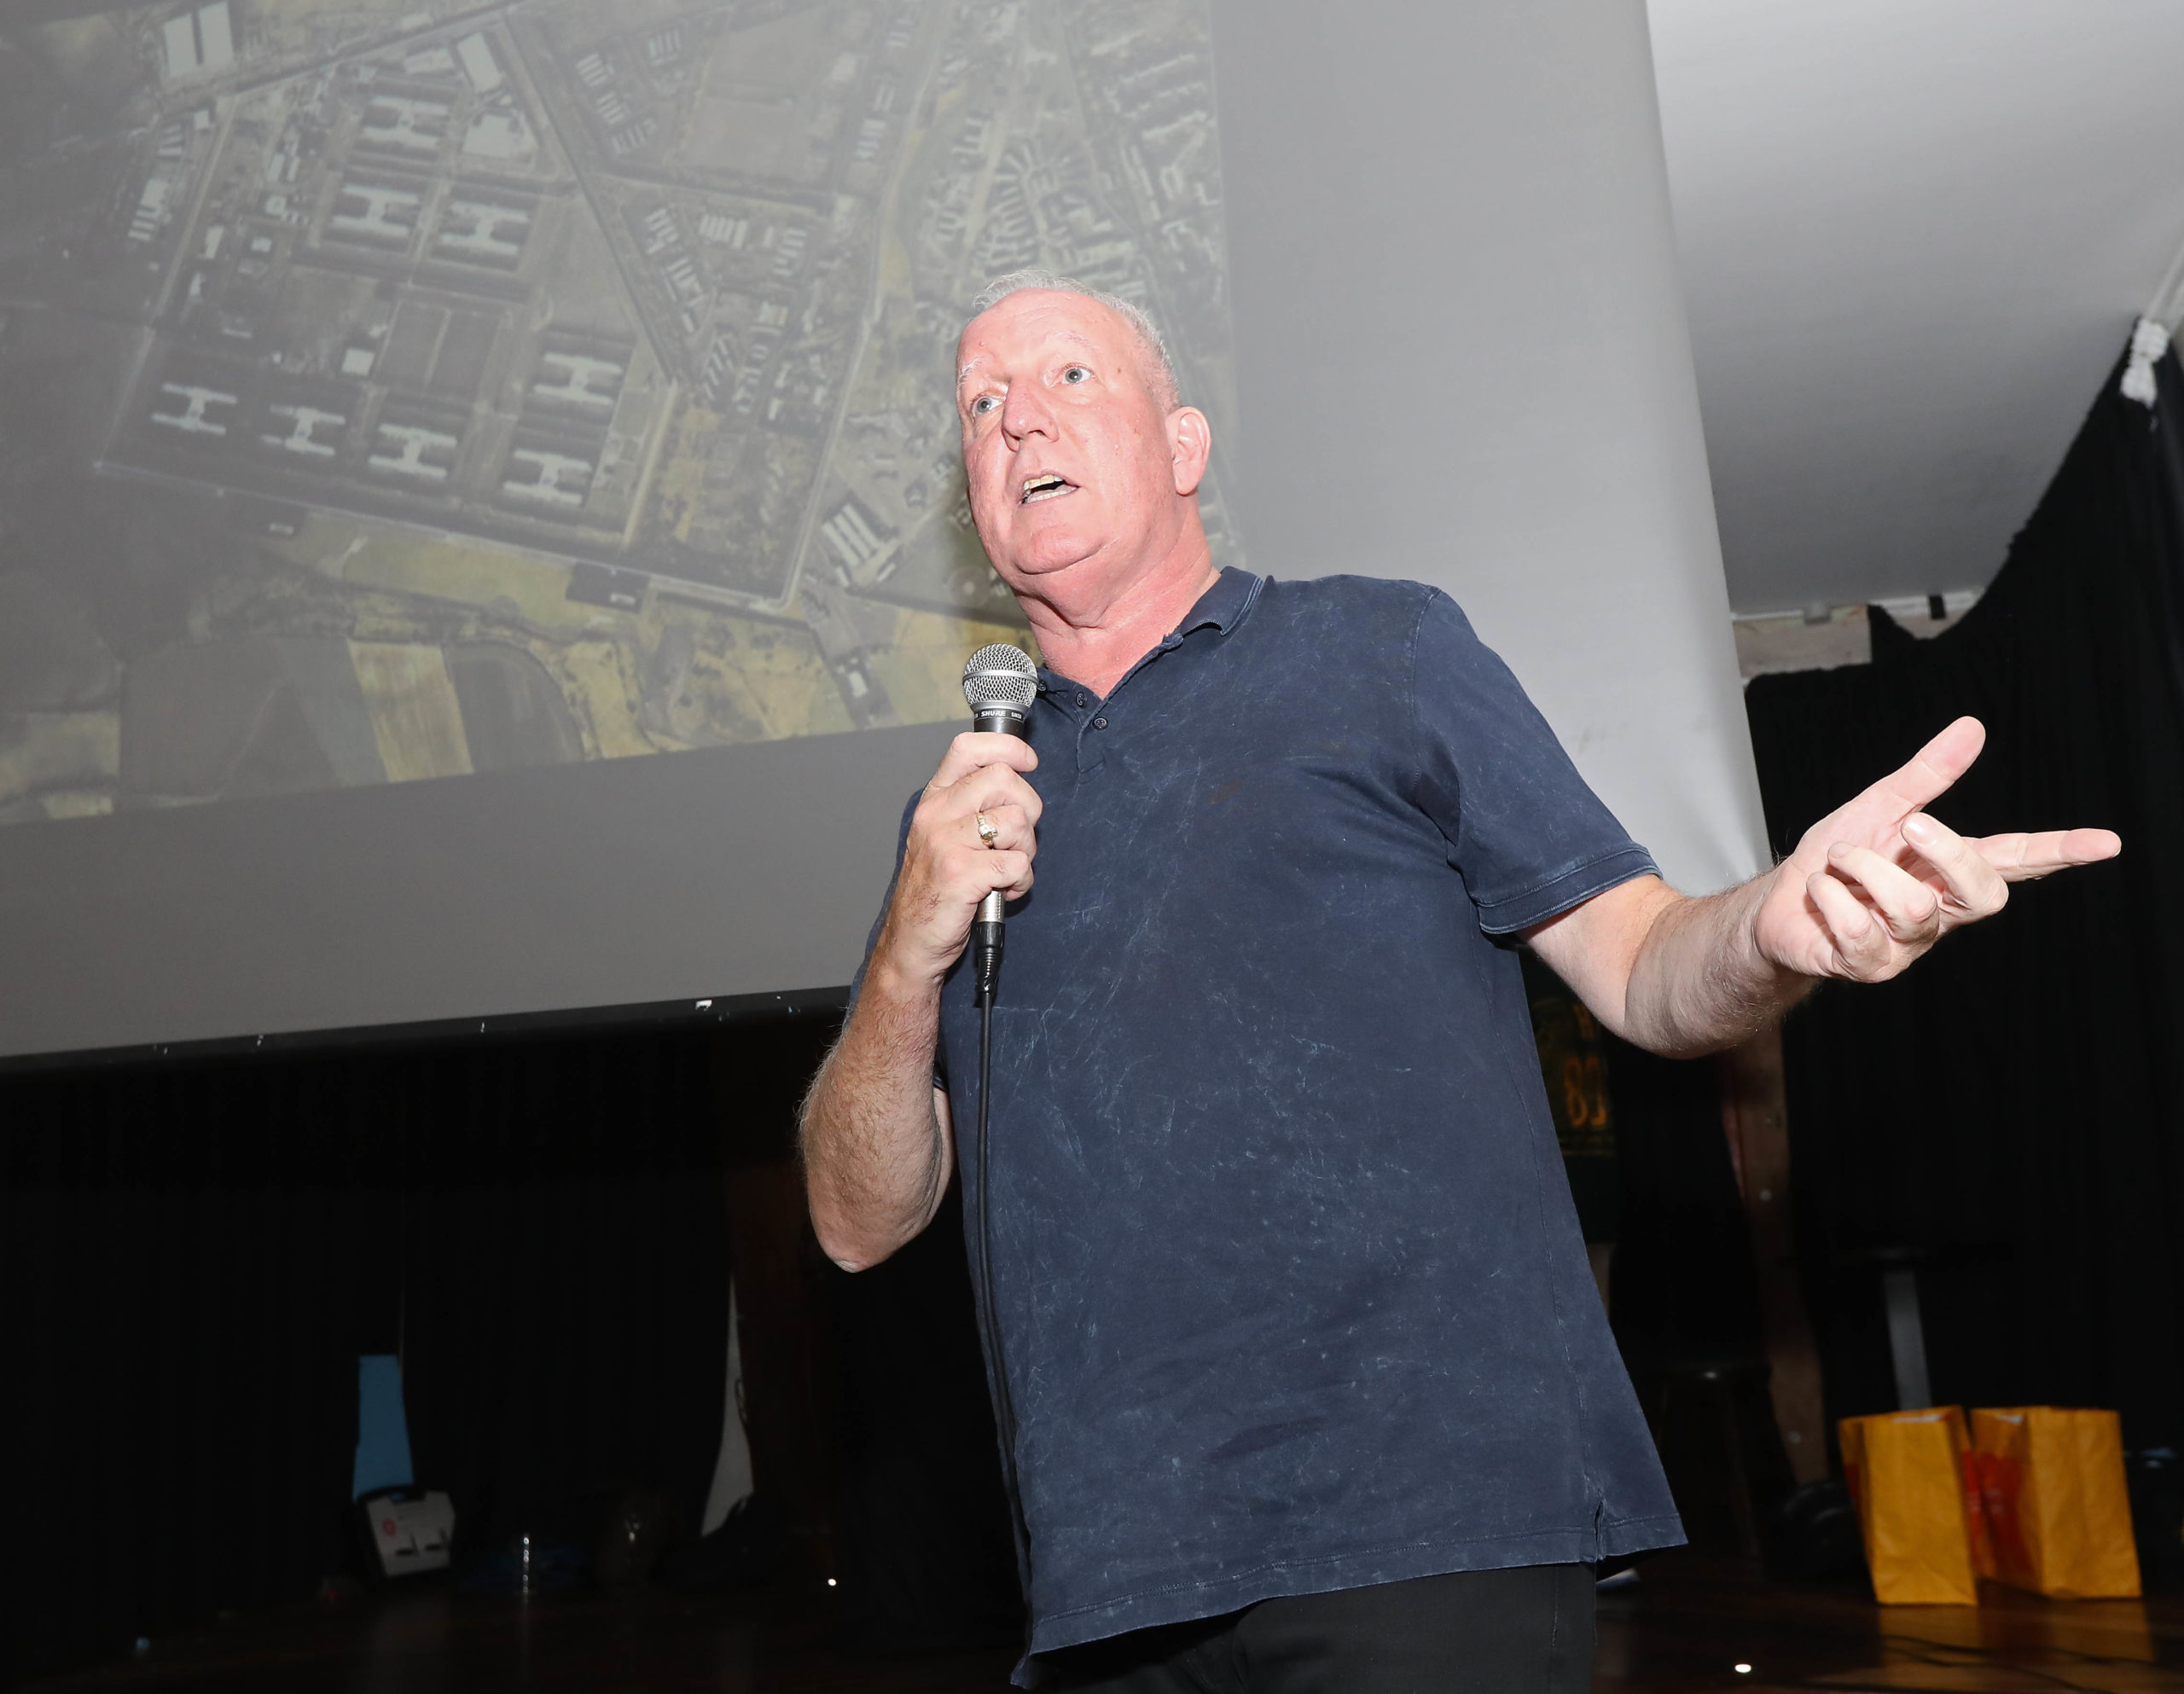 Bobby storey great escape talk 2018 scaled